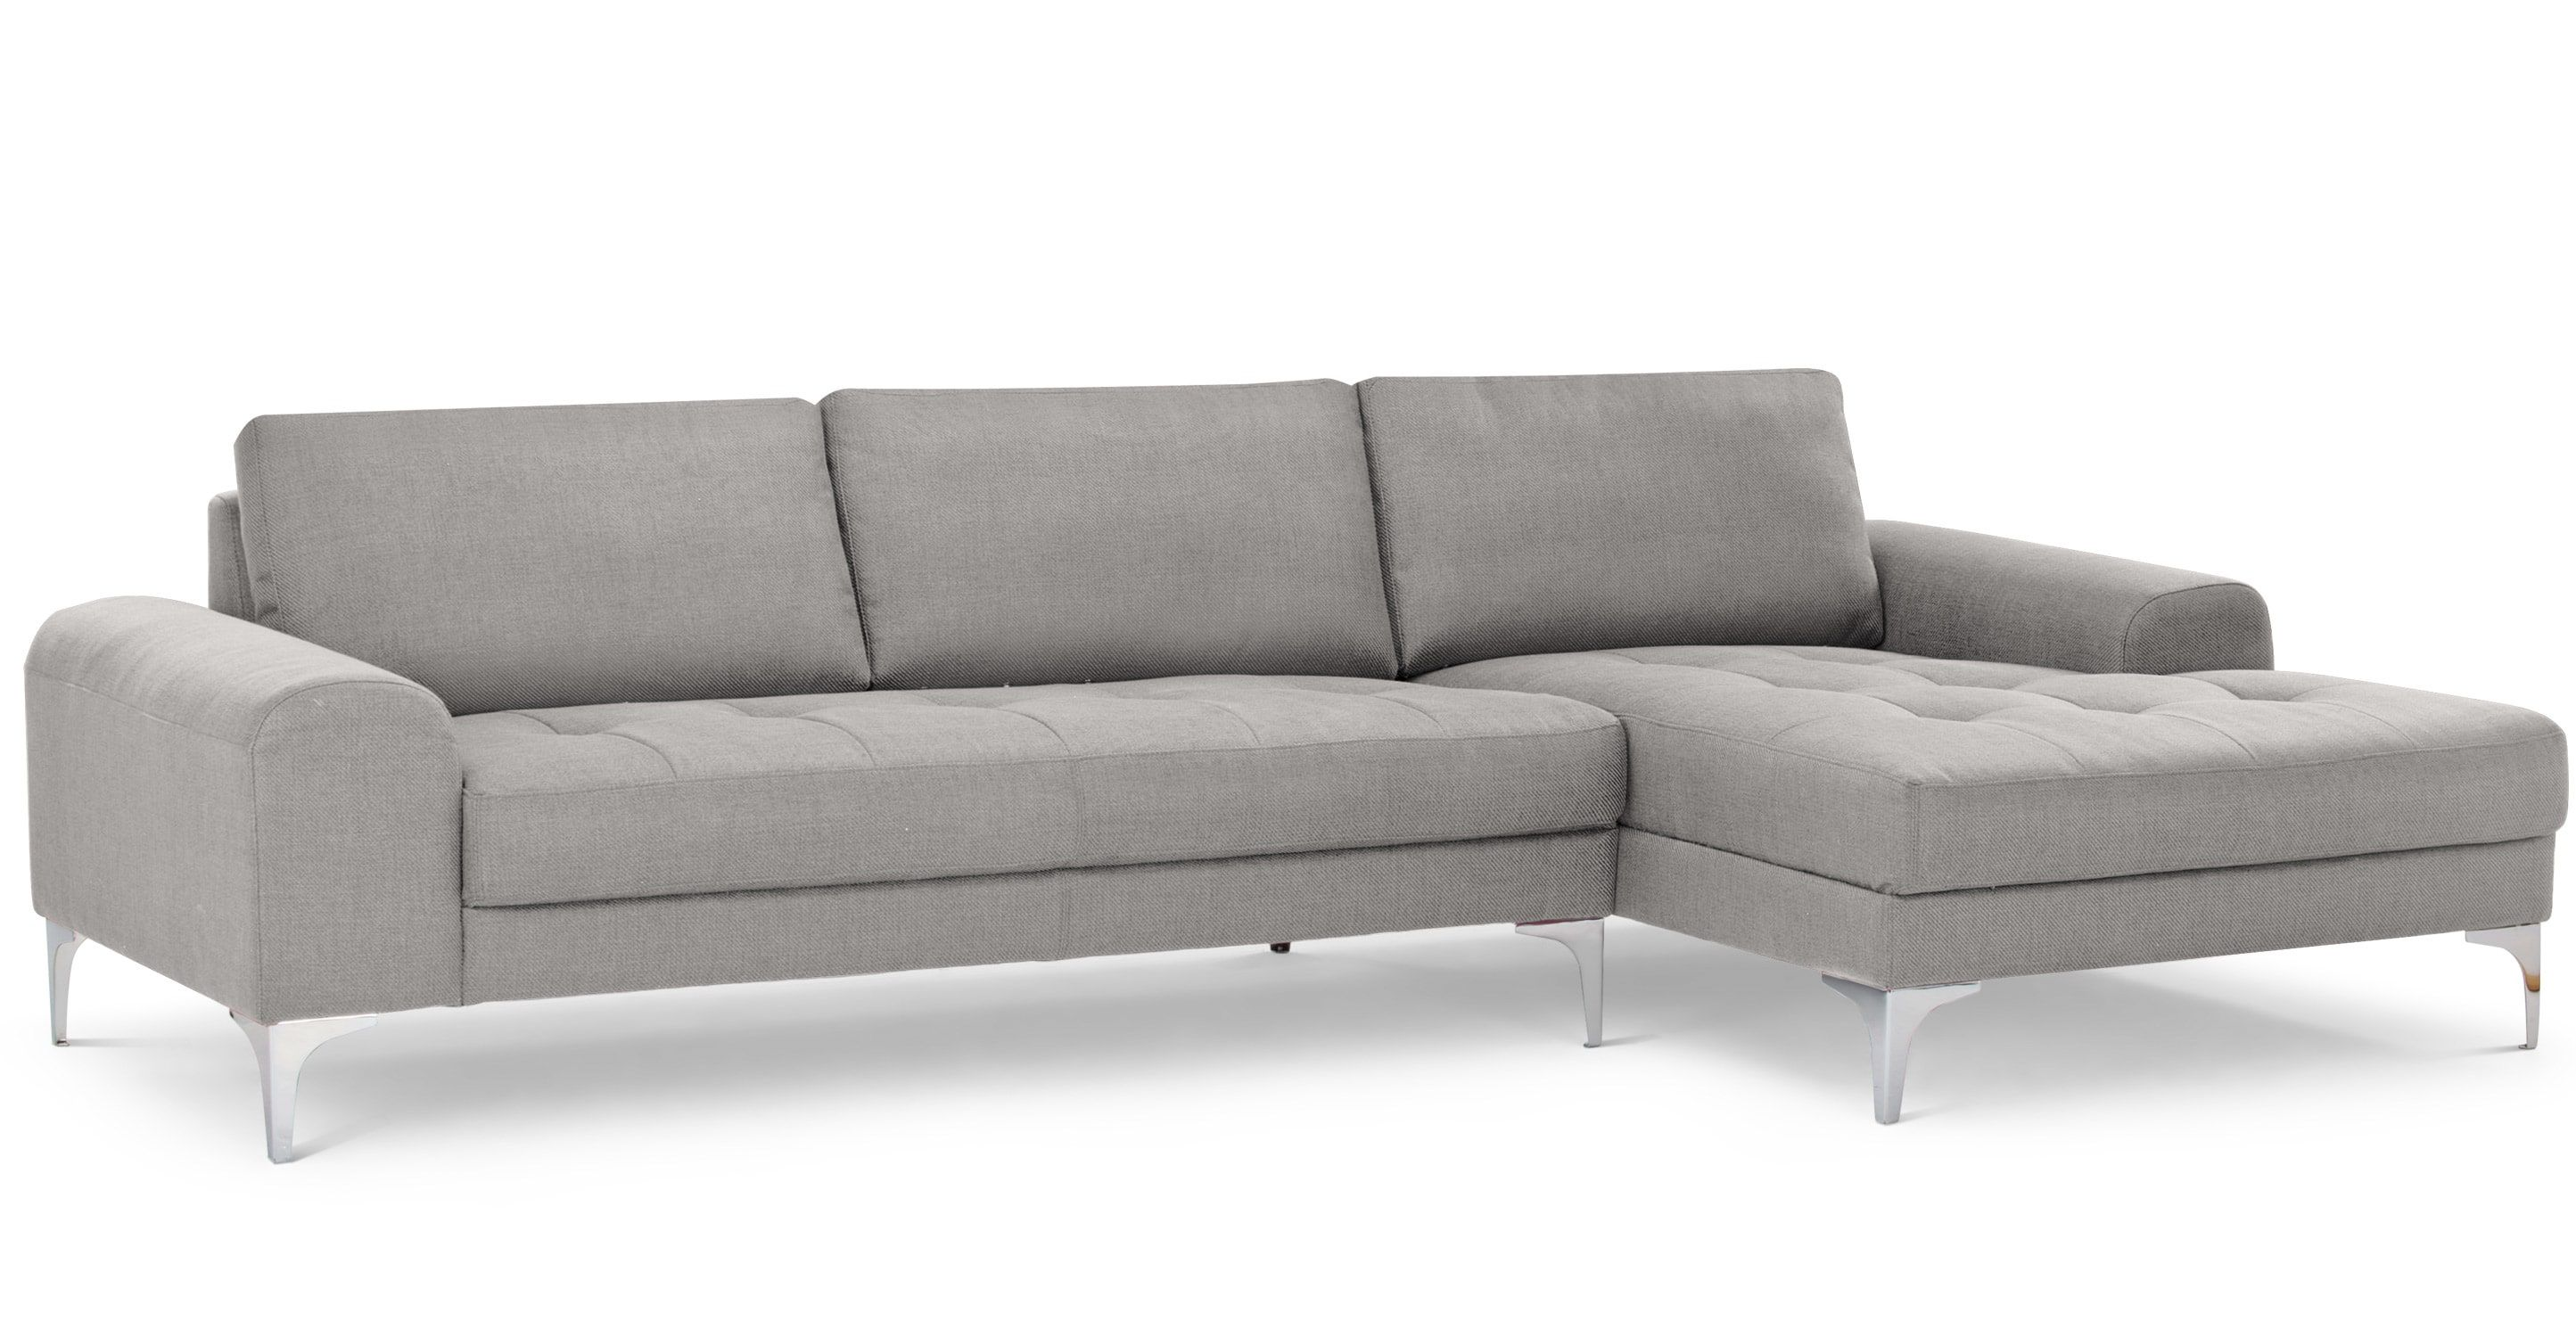 Vittorio Right Hand Facing Chaise End Corner Sofa Pearl Grey Leather Corner Sofa Corner Sofa Grey Corner Sofa